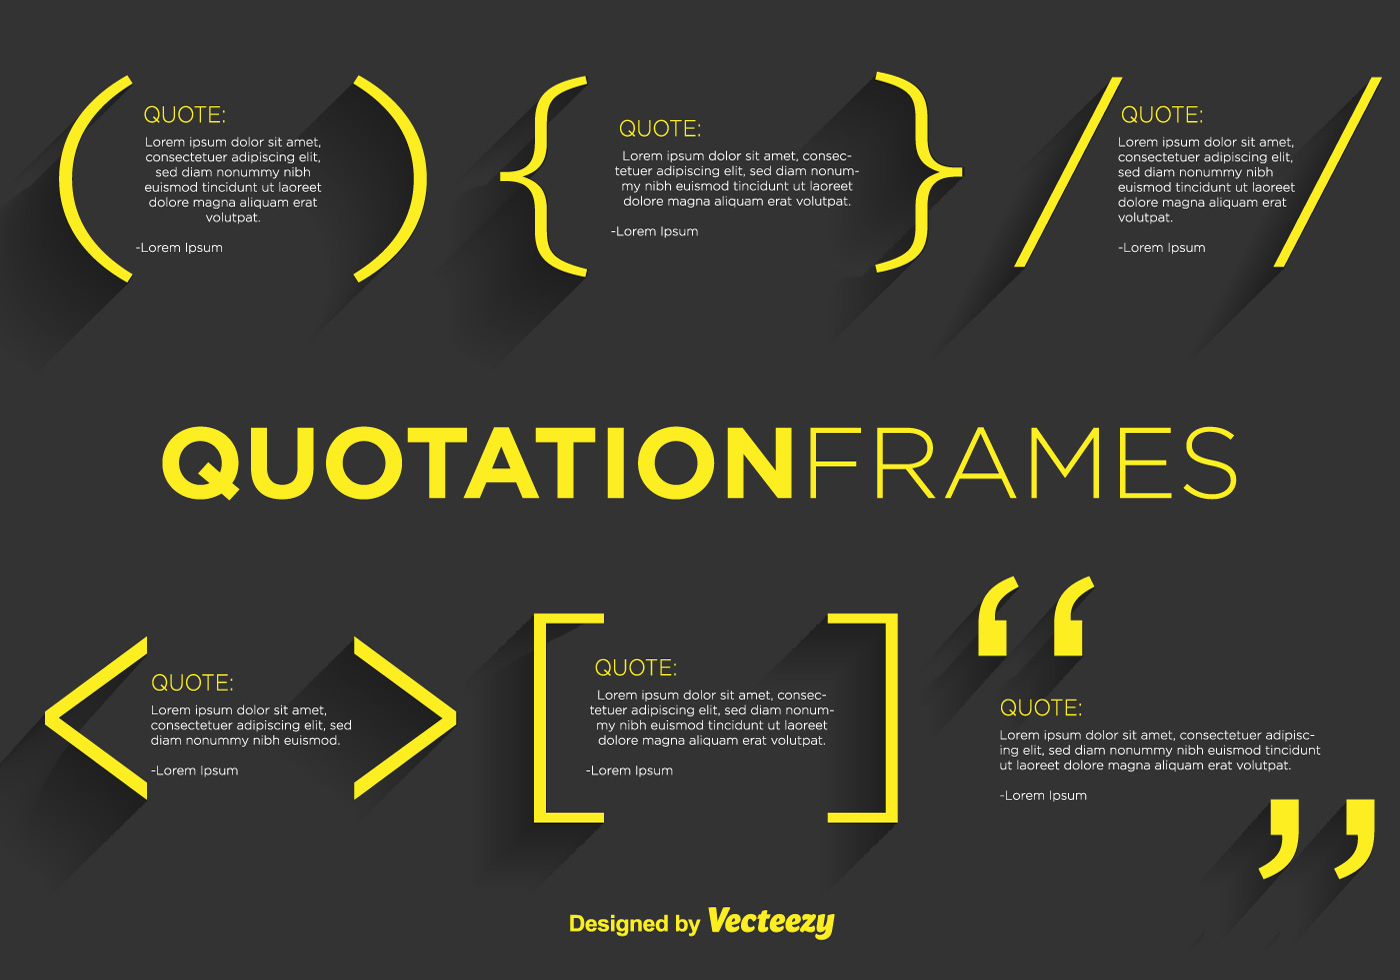 Box Stock Project >> Quotation Mark Vector Templates - Download Free Vector Art, Stock Graphics & Images